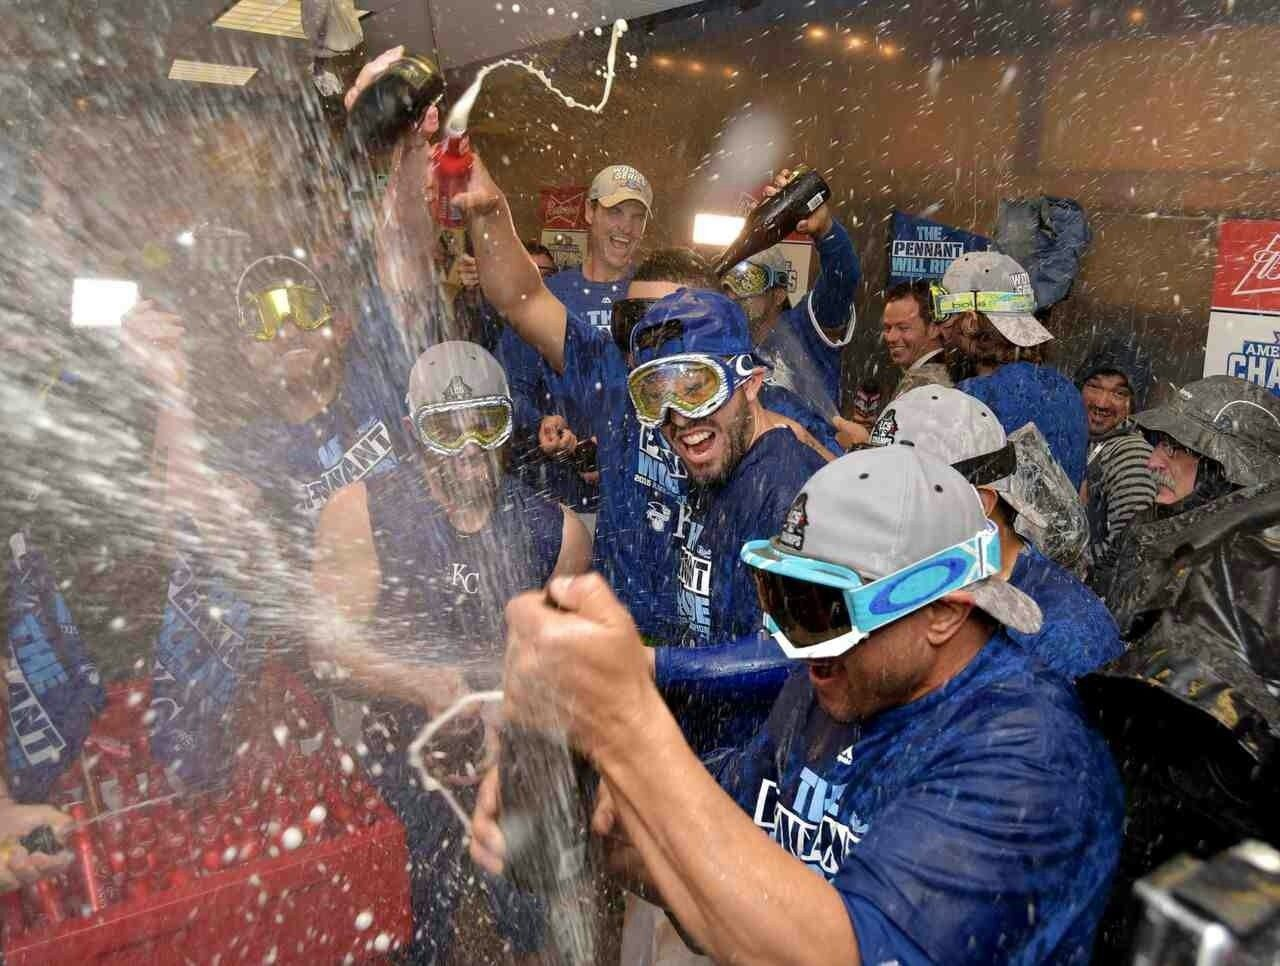 Kansas City Royals players wearing Oakley Goggles during clubhouse celebrations. - 0844d9c2bc9e9c550ed6ad30da9a33f8.jpg